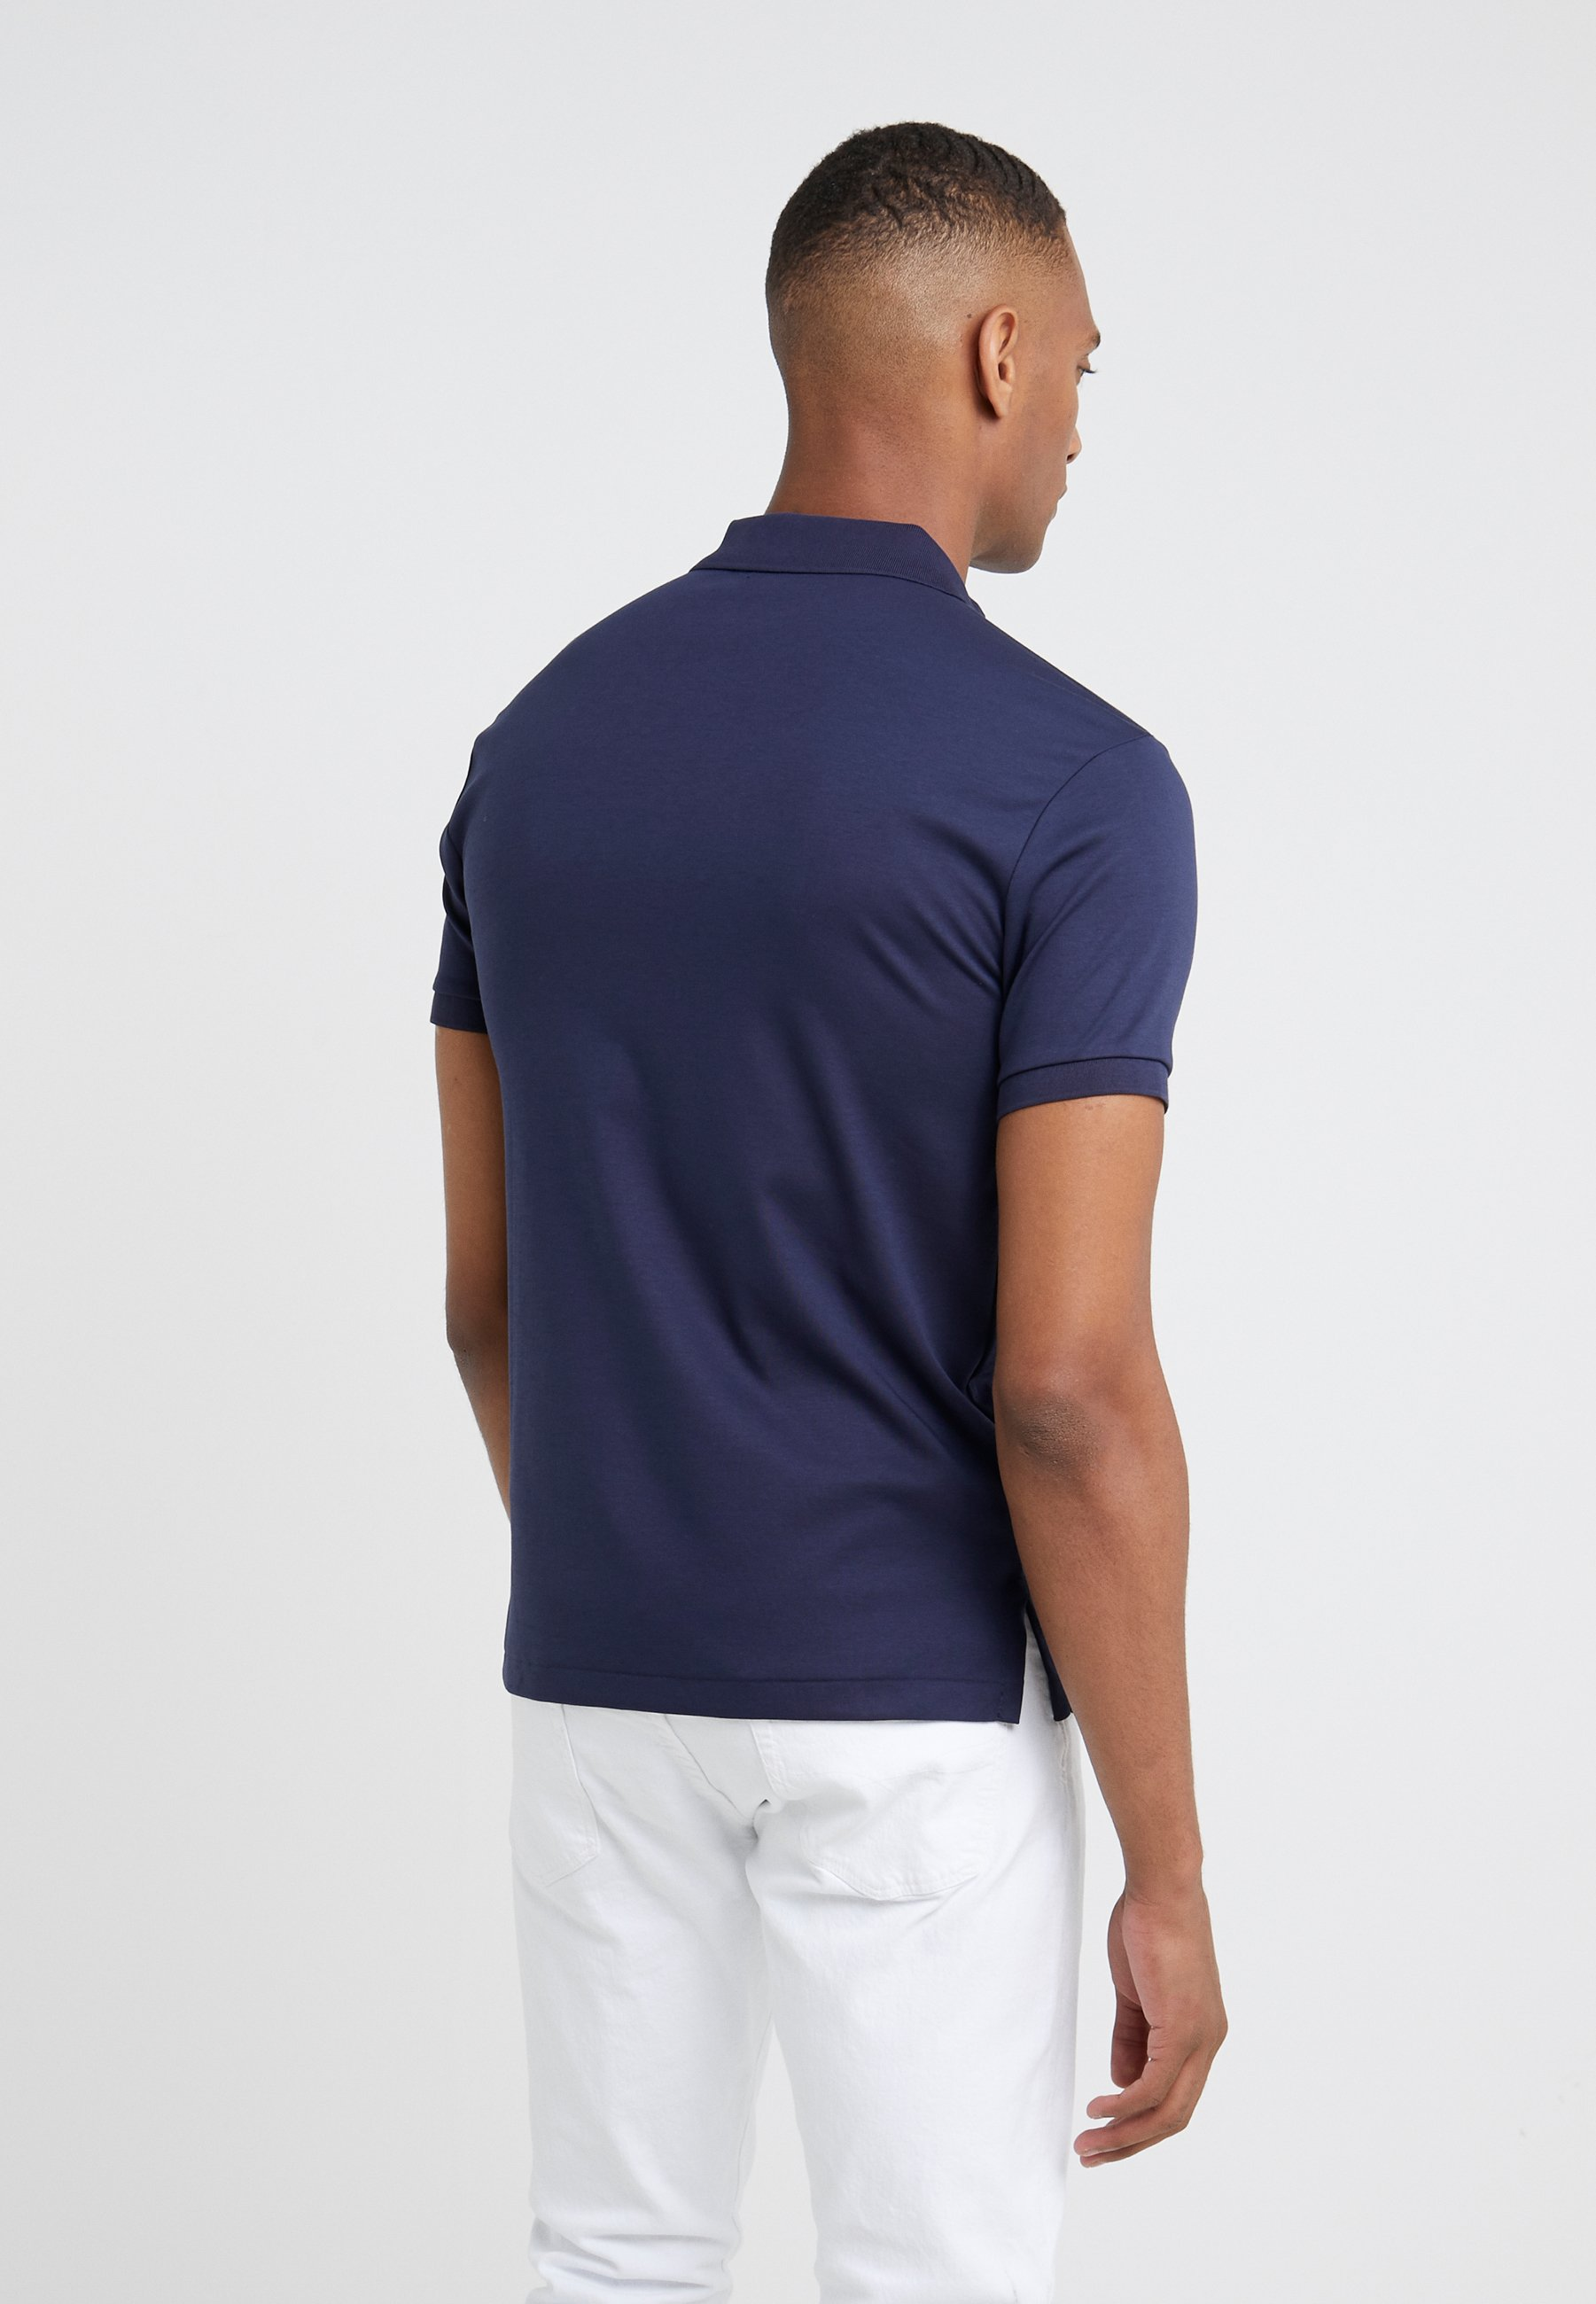 Ralph Polo LaurenFrench Navy Polo Polo Navy LaurenFrench Ralph jLqUGpSzMV